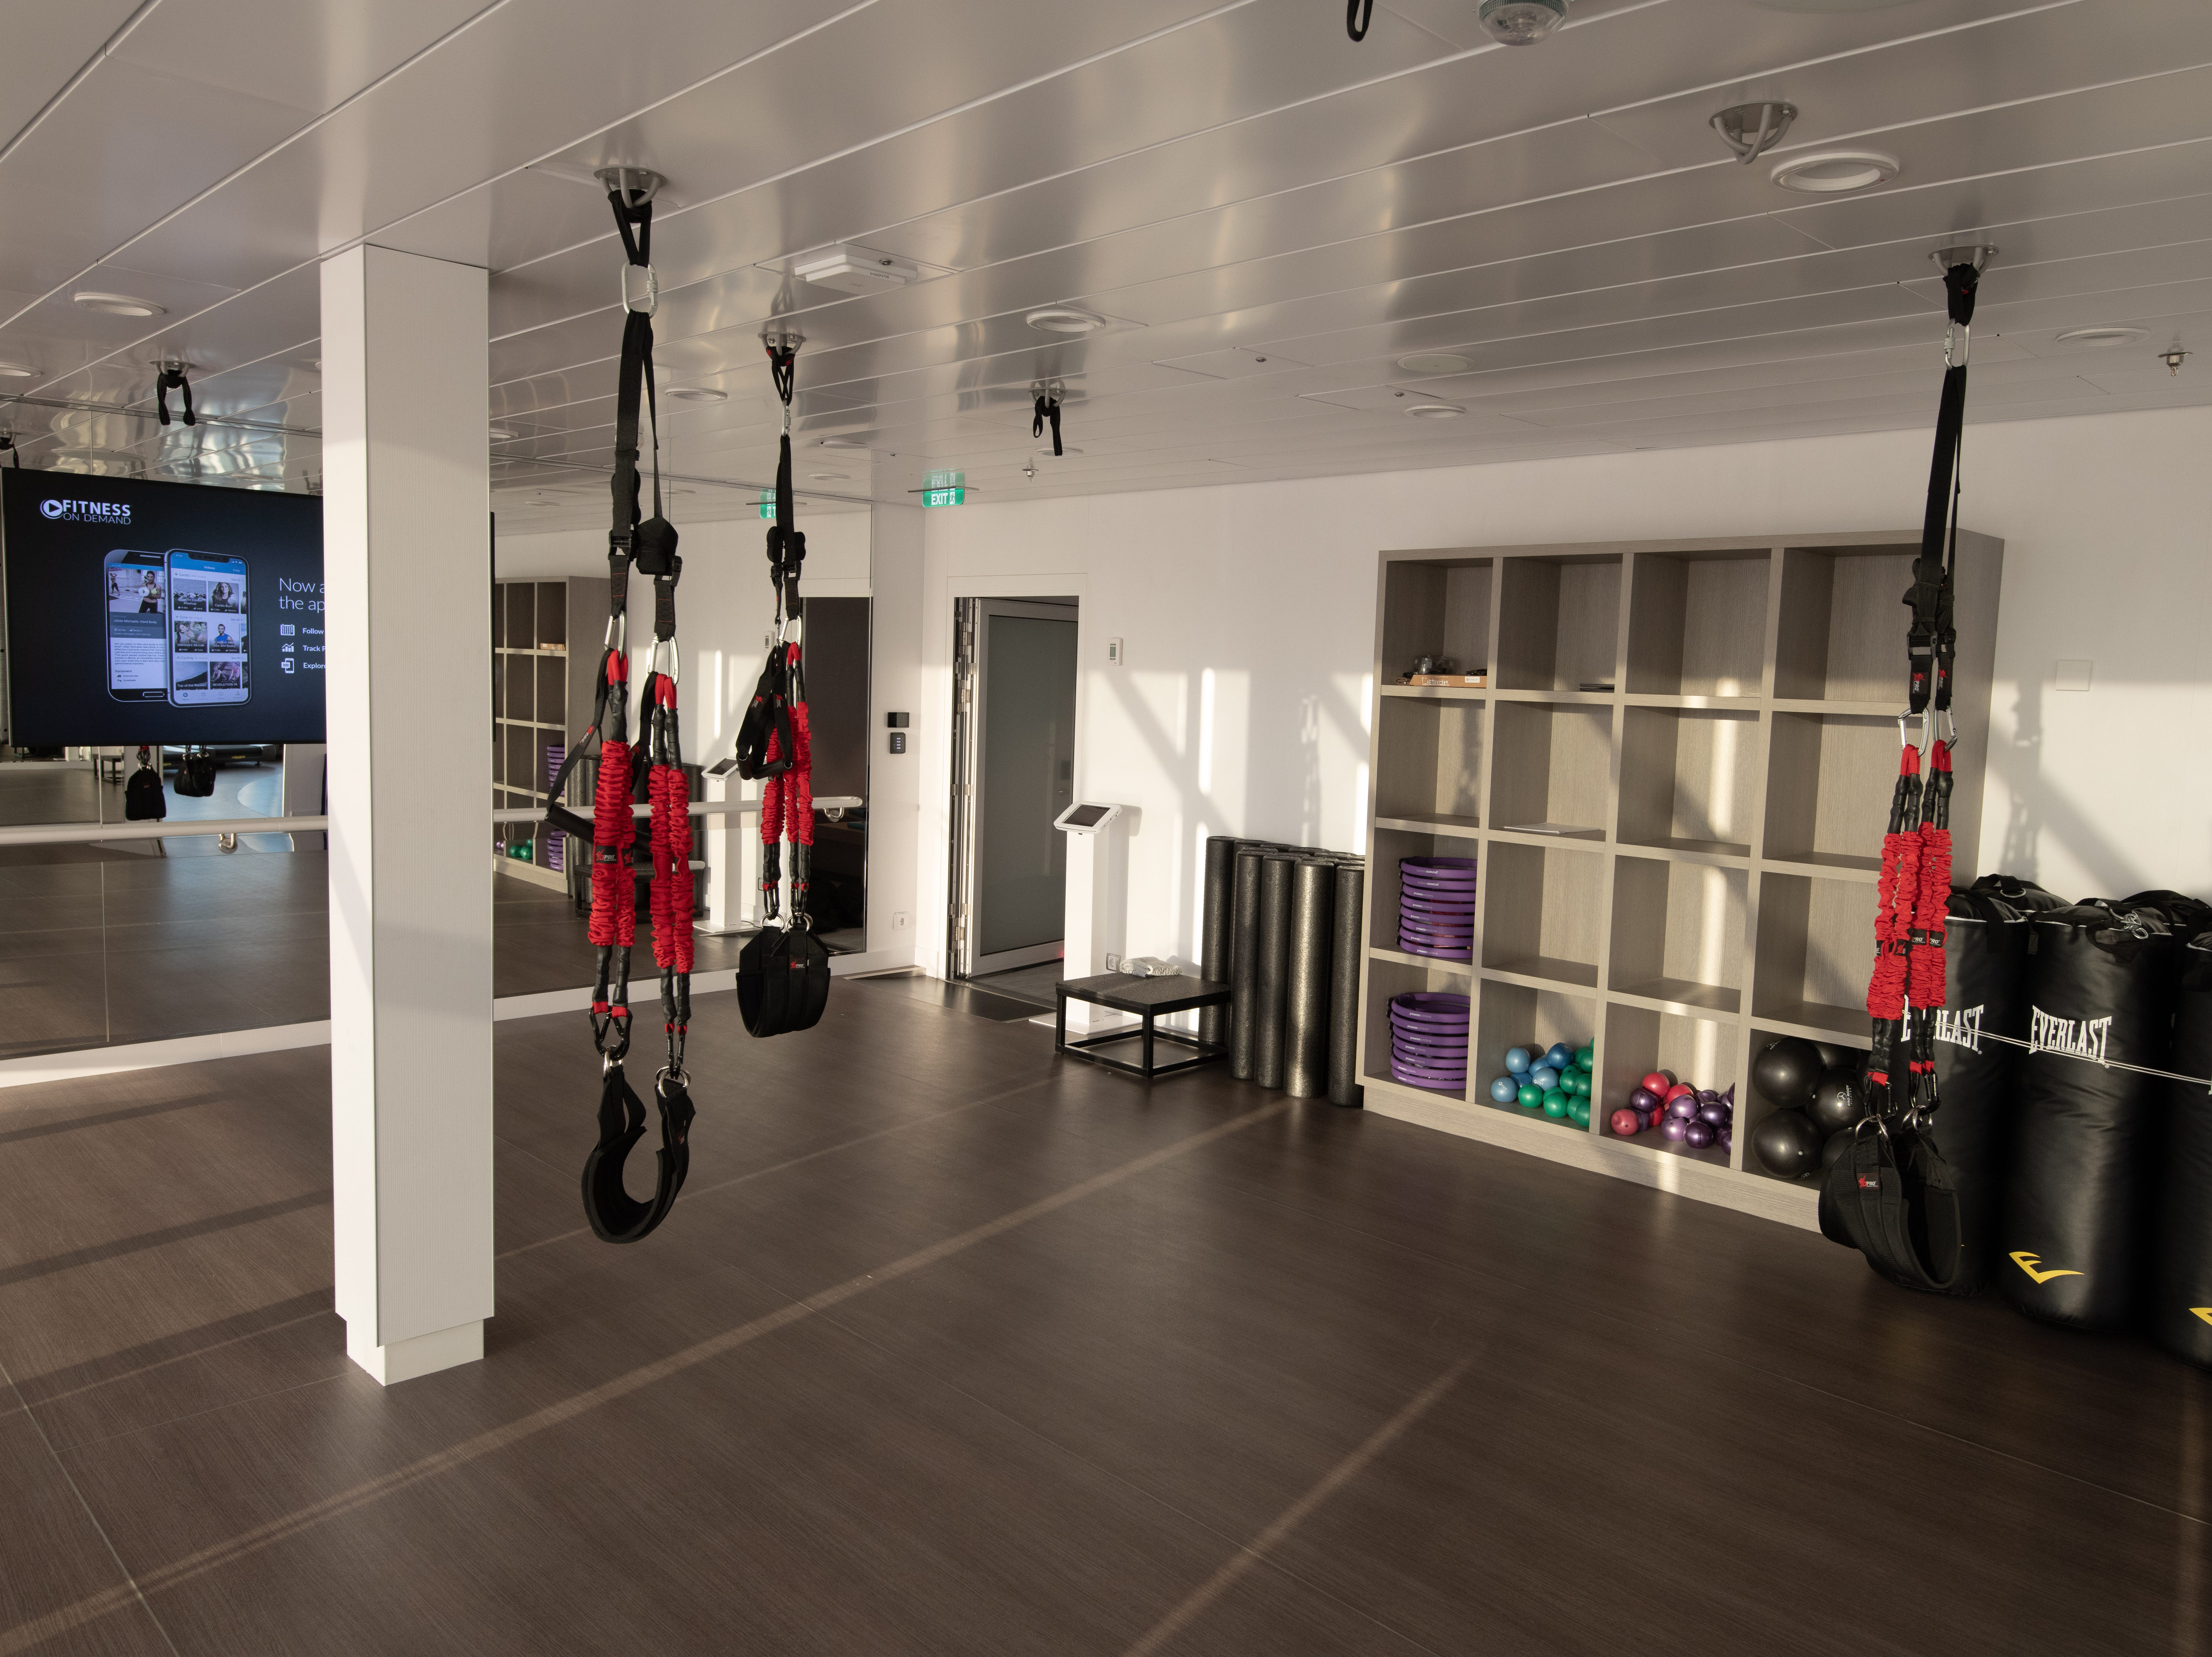 The Fitness Center has two motion studios, one of which is outfitted with harnesses and punching bags.